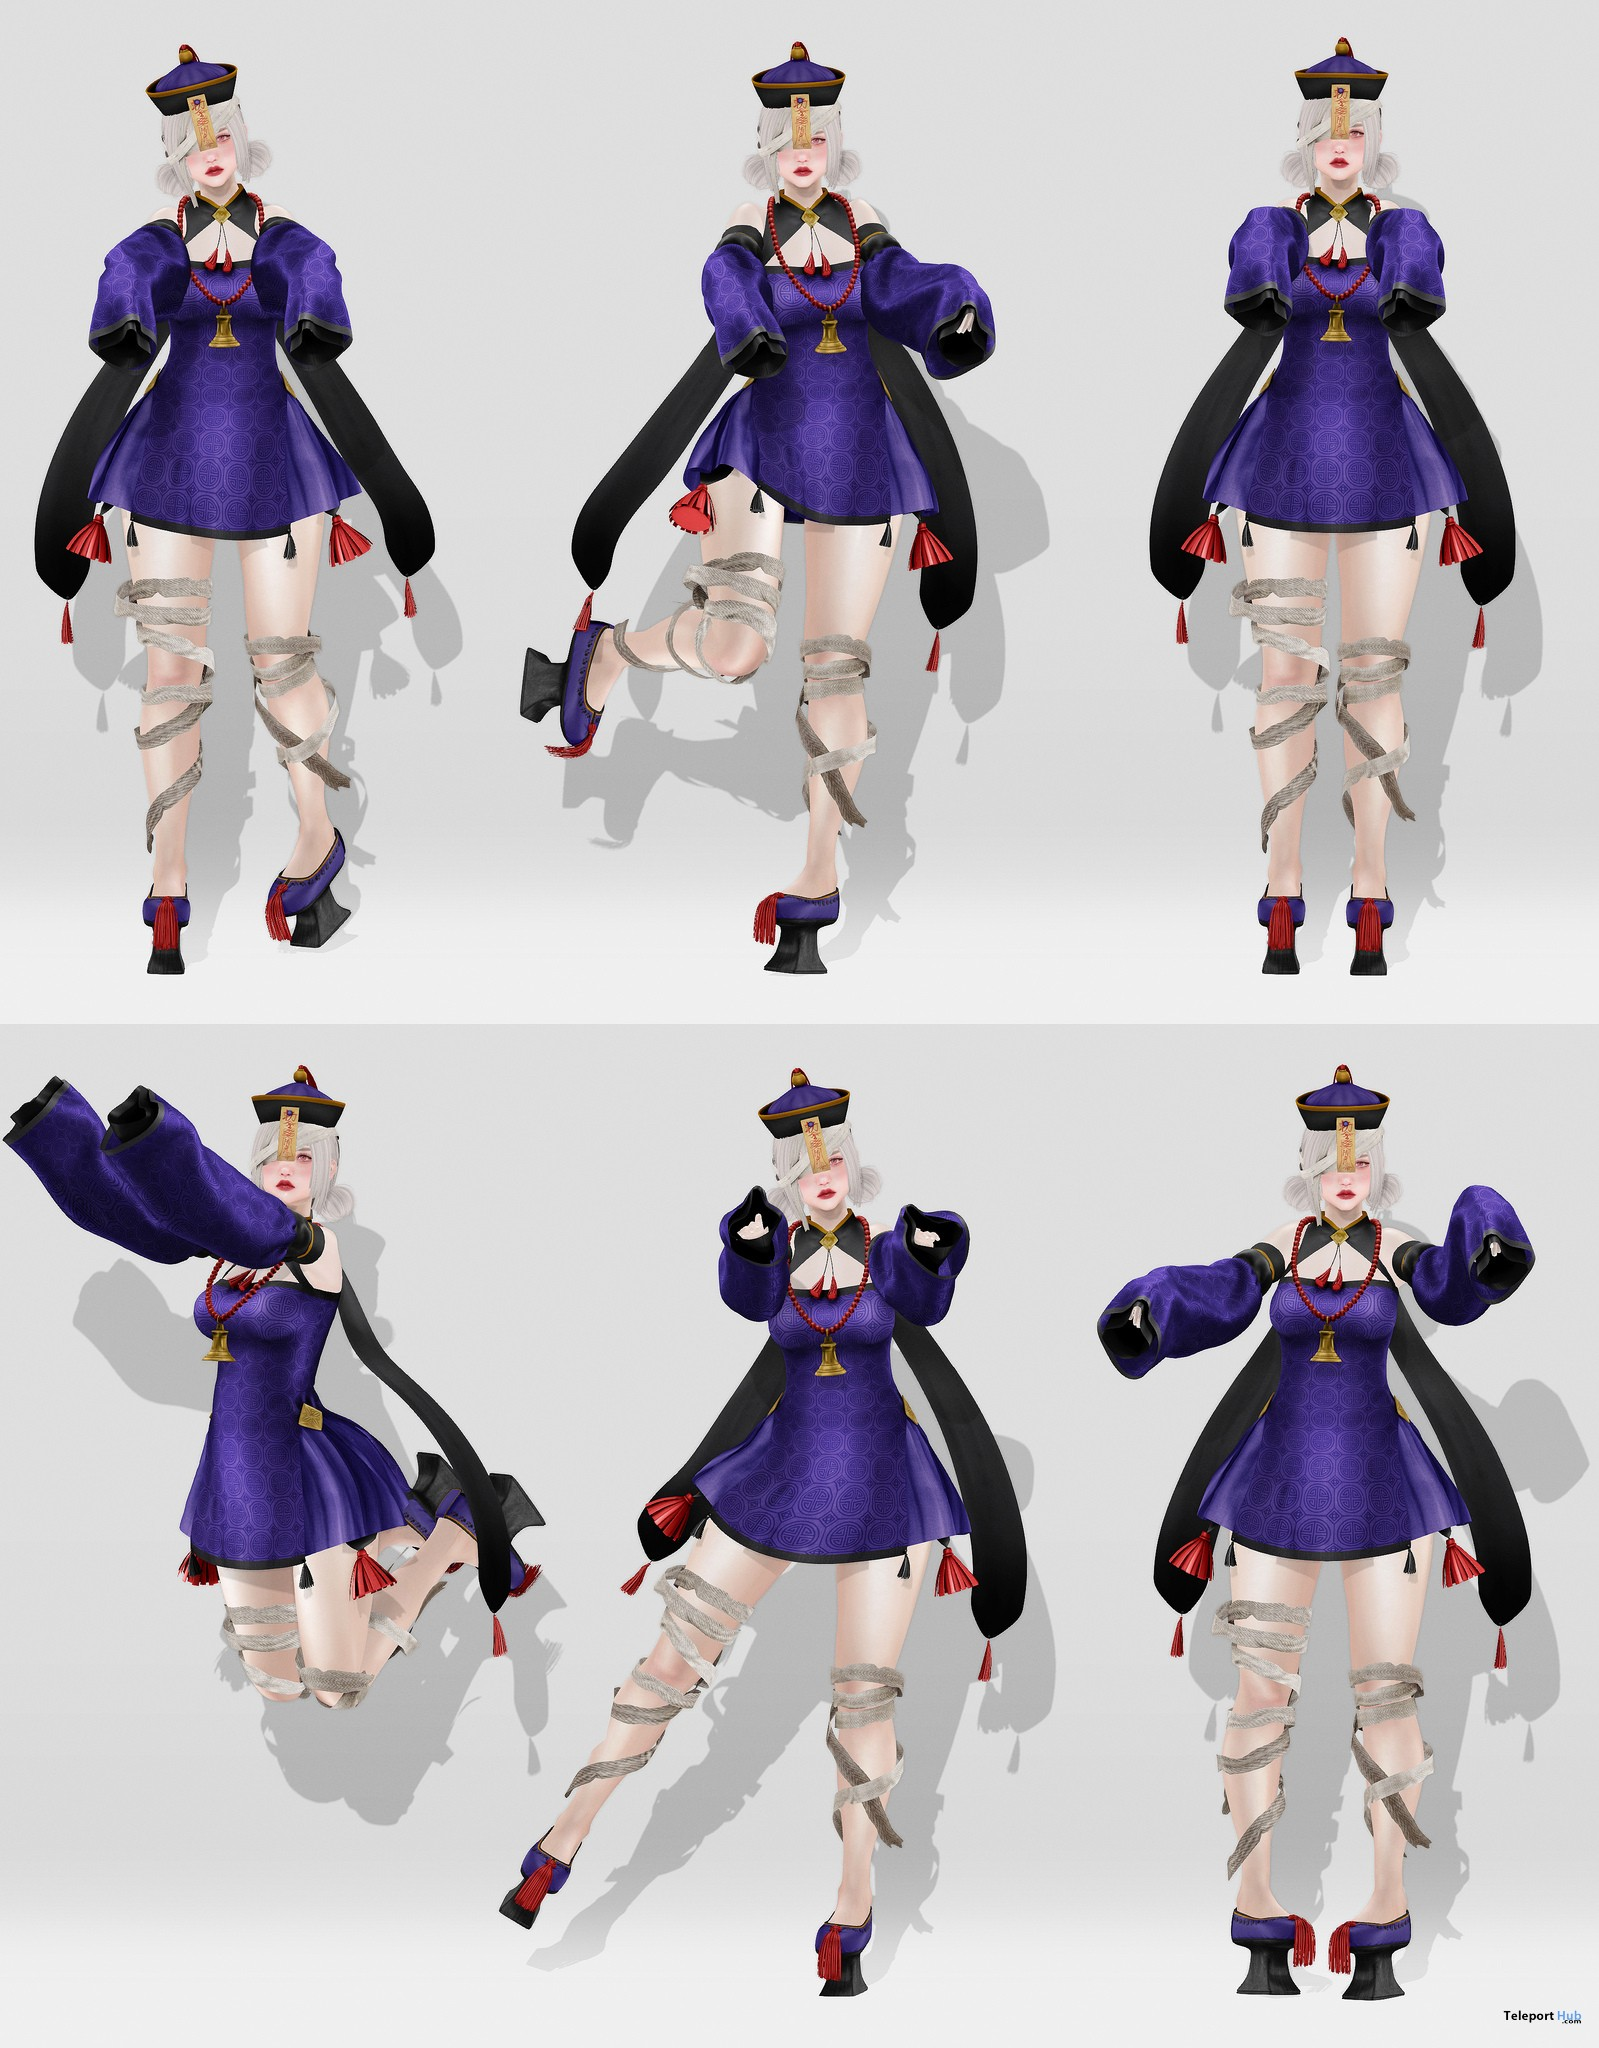 Jiangshi Chinese Vampire Poses October 2018 Group Gift by Bonbon - Teleport Hub - teleporthub.com